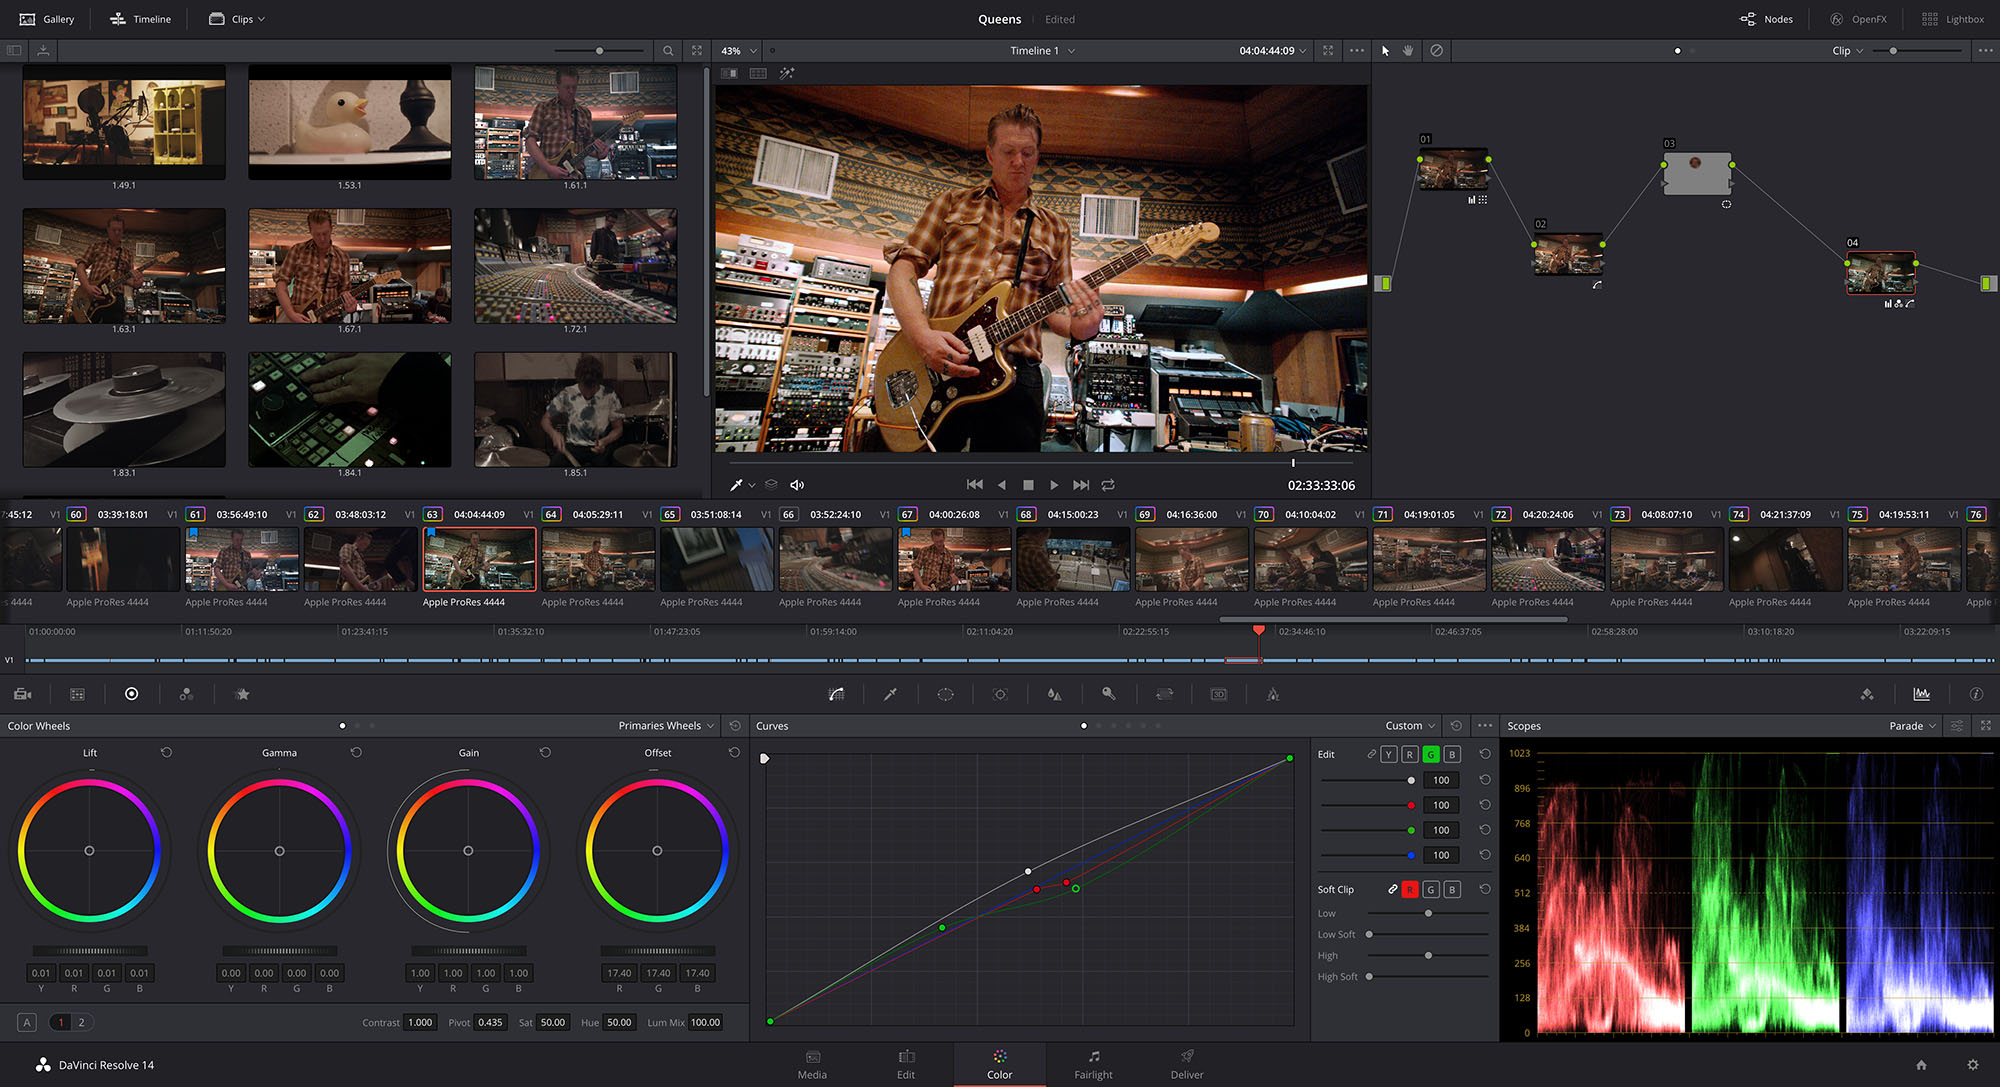 DaVinci Resolve 14 is now shipping